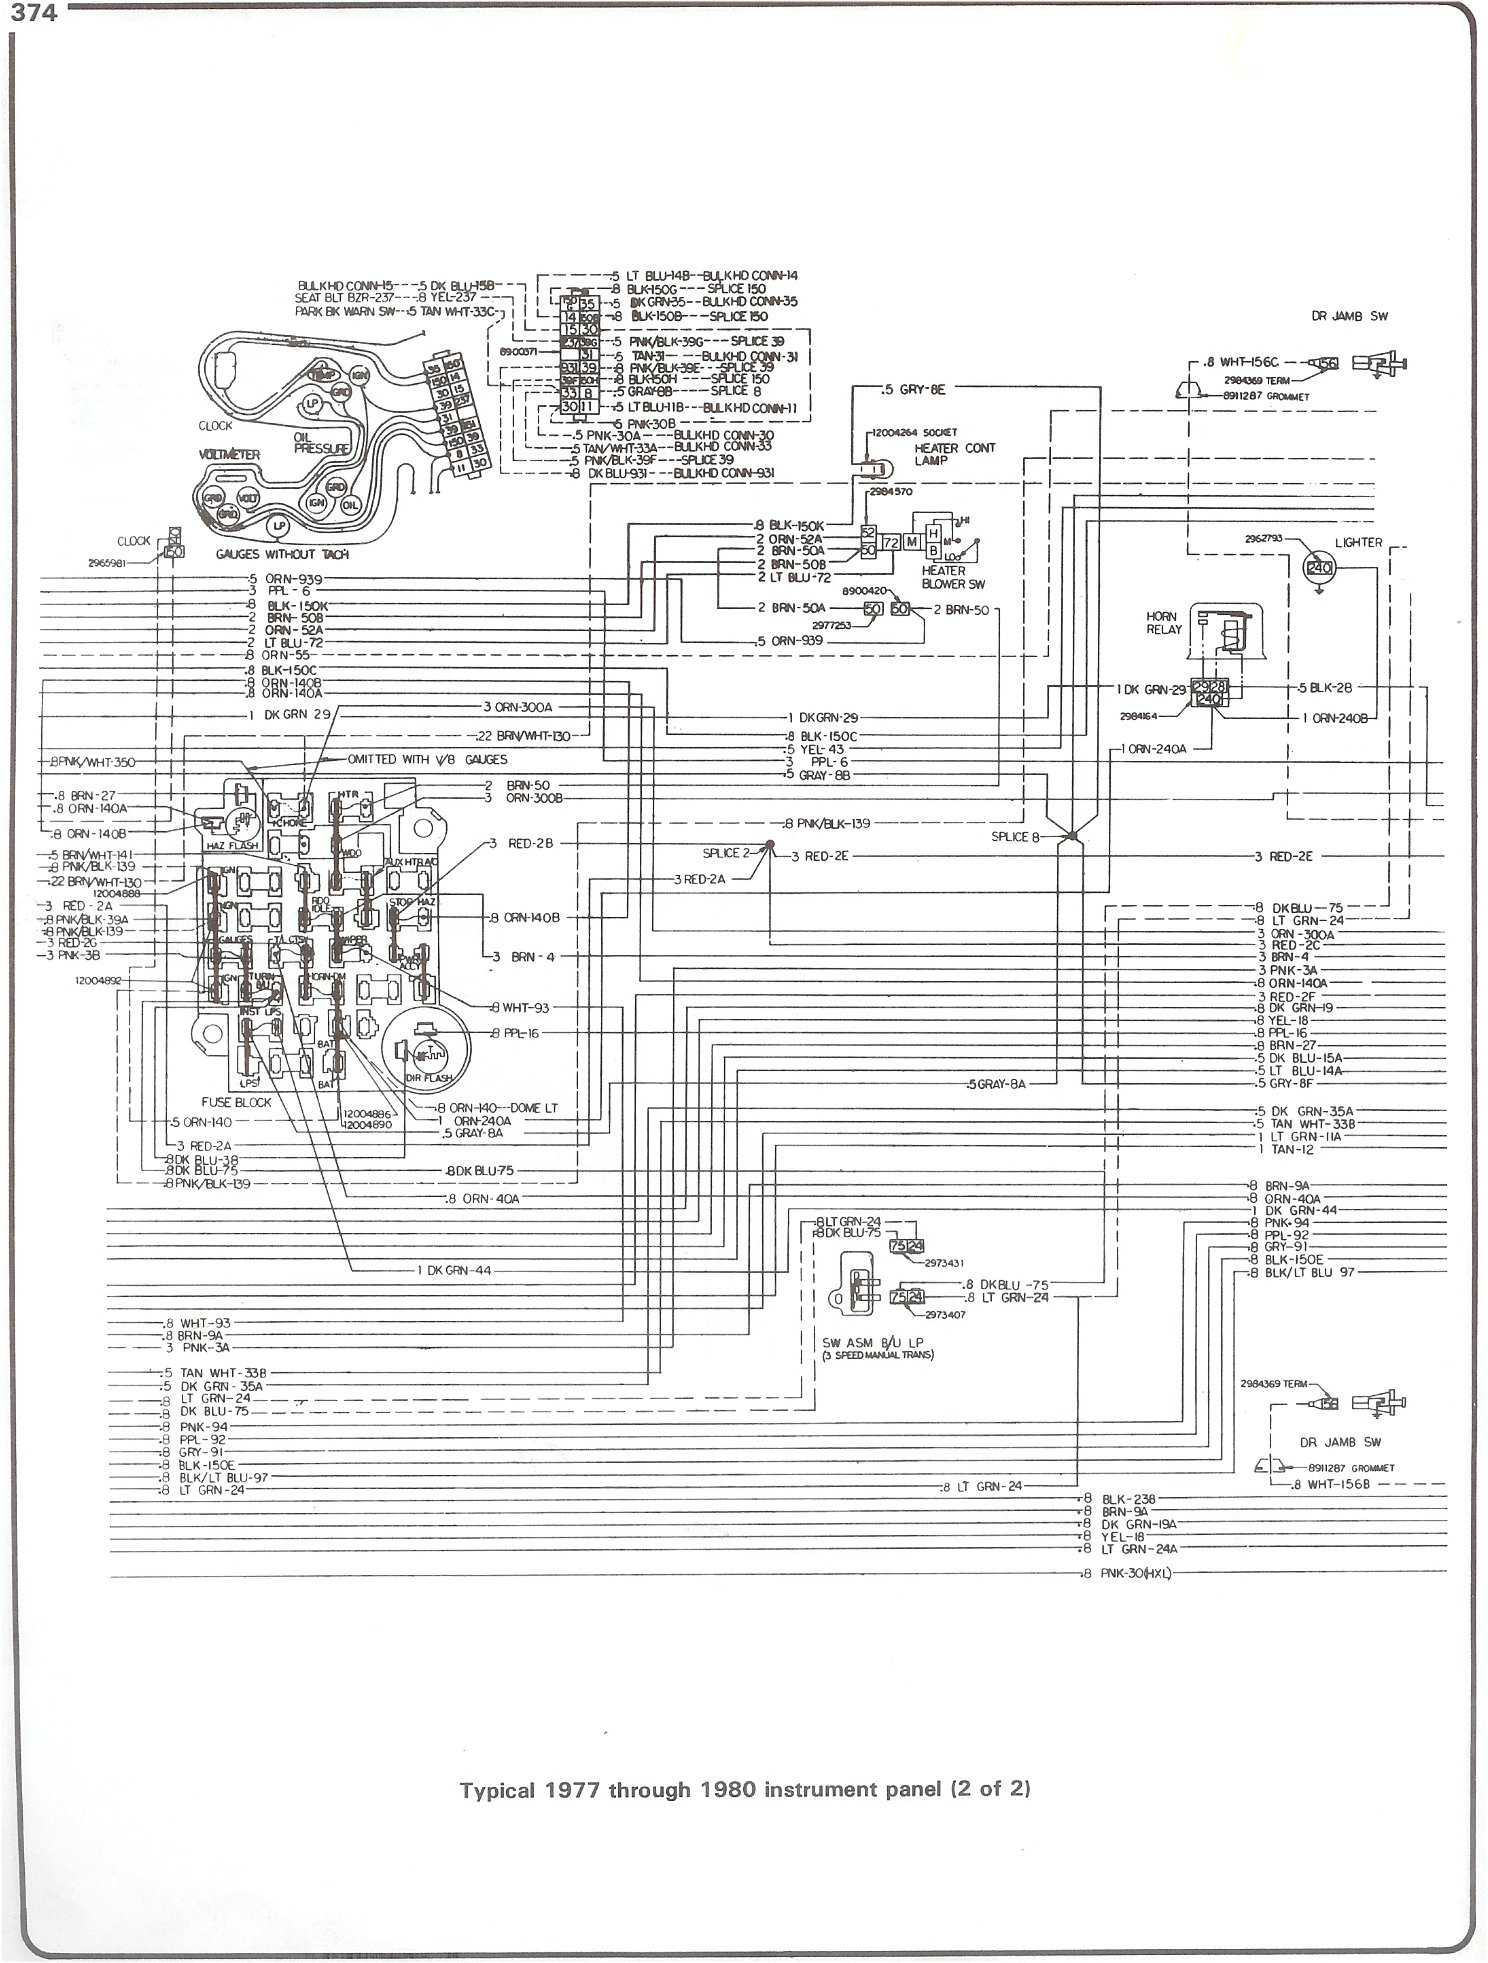 77 80_instrument_pg2 complete 73 87 wiring diagrams 73-87 Chevy Wiring Diagrams Site at nearapp.co